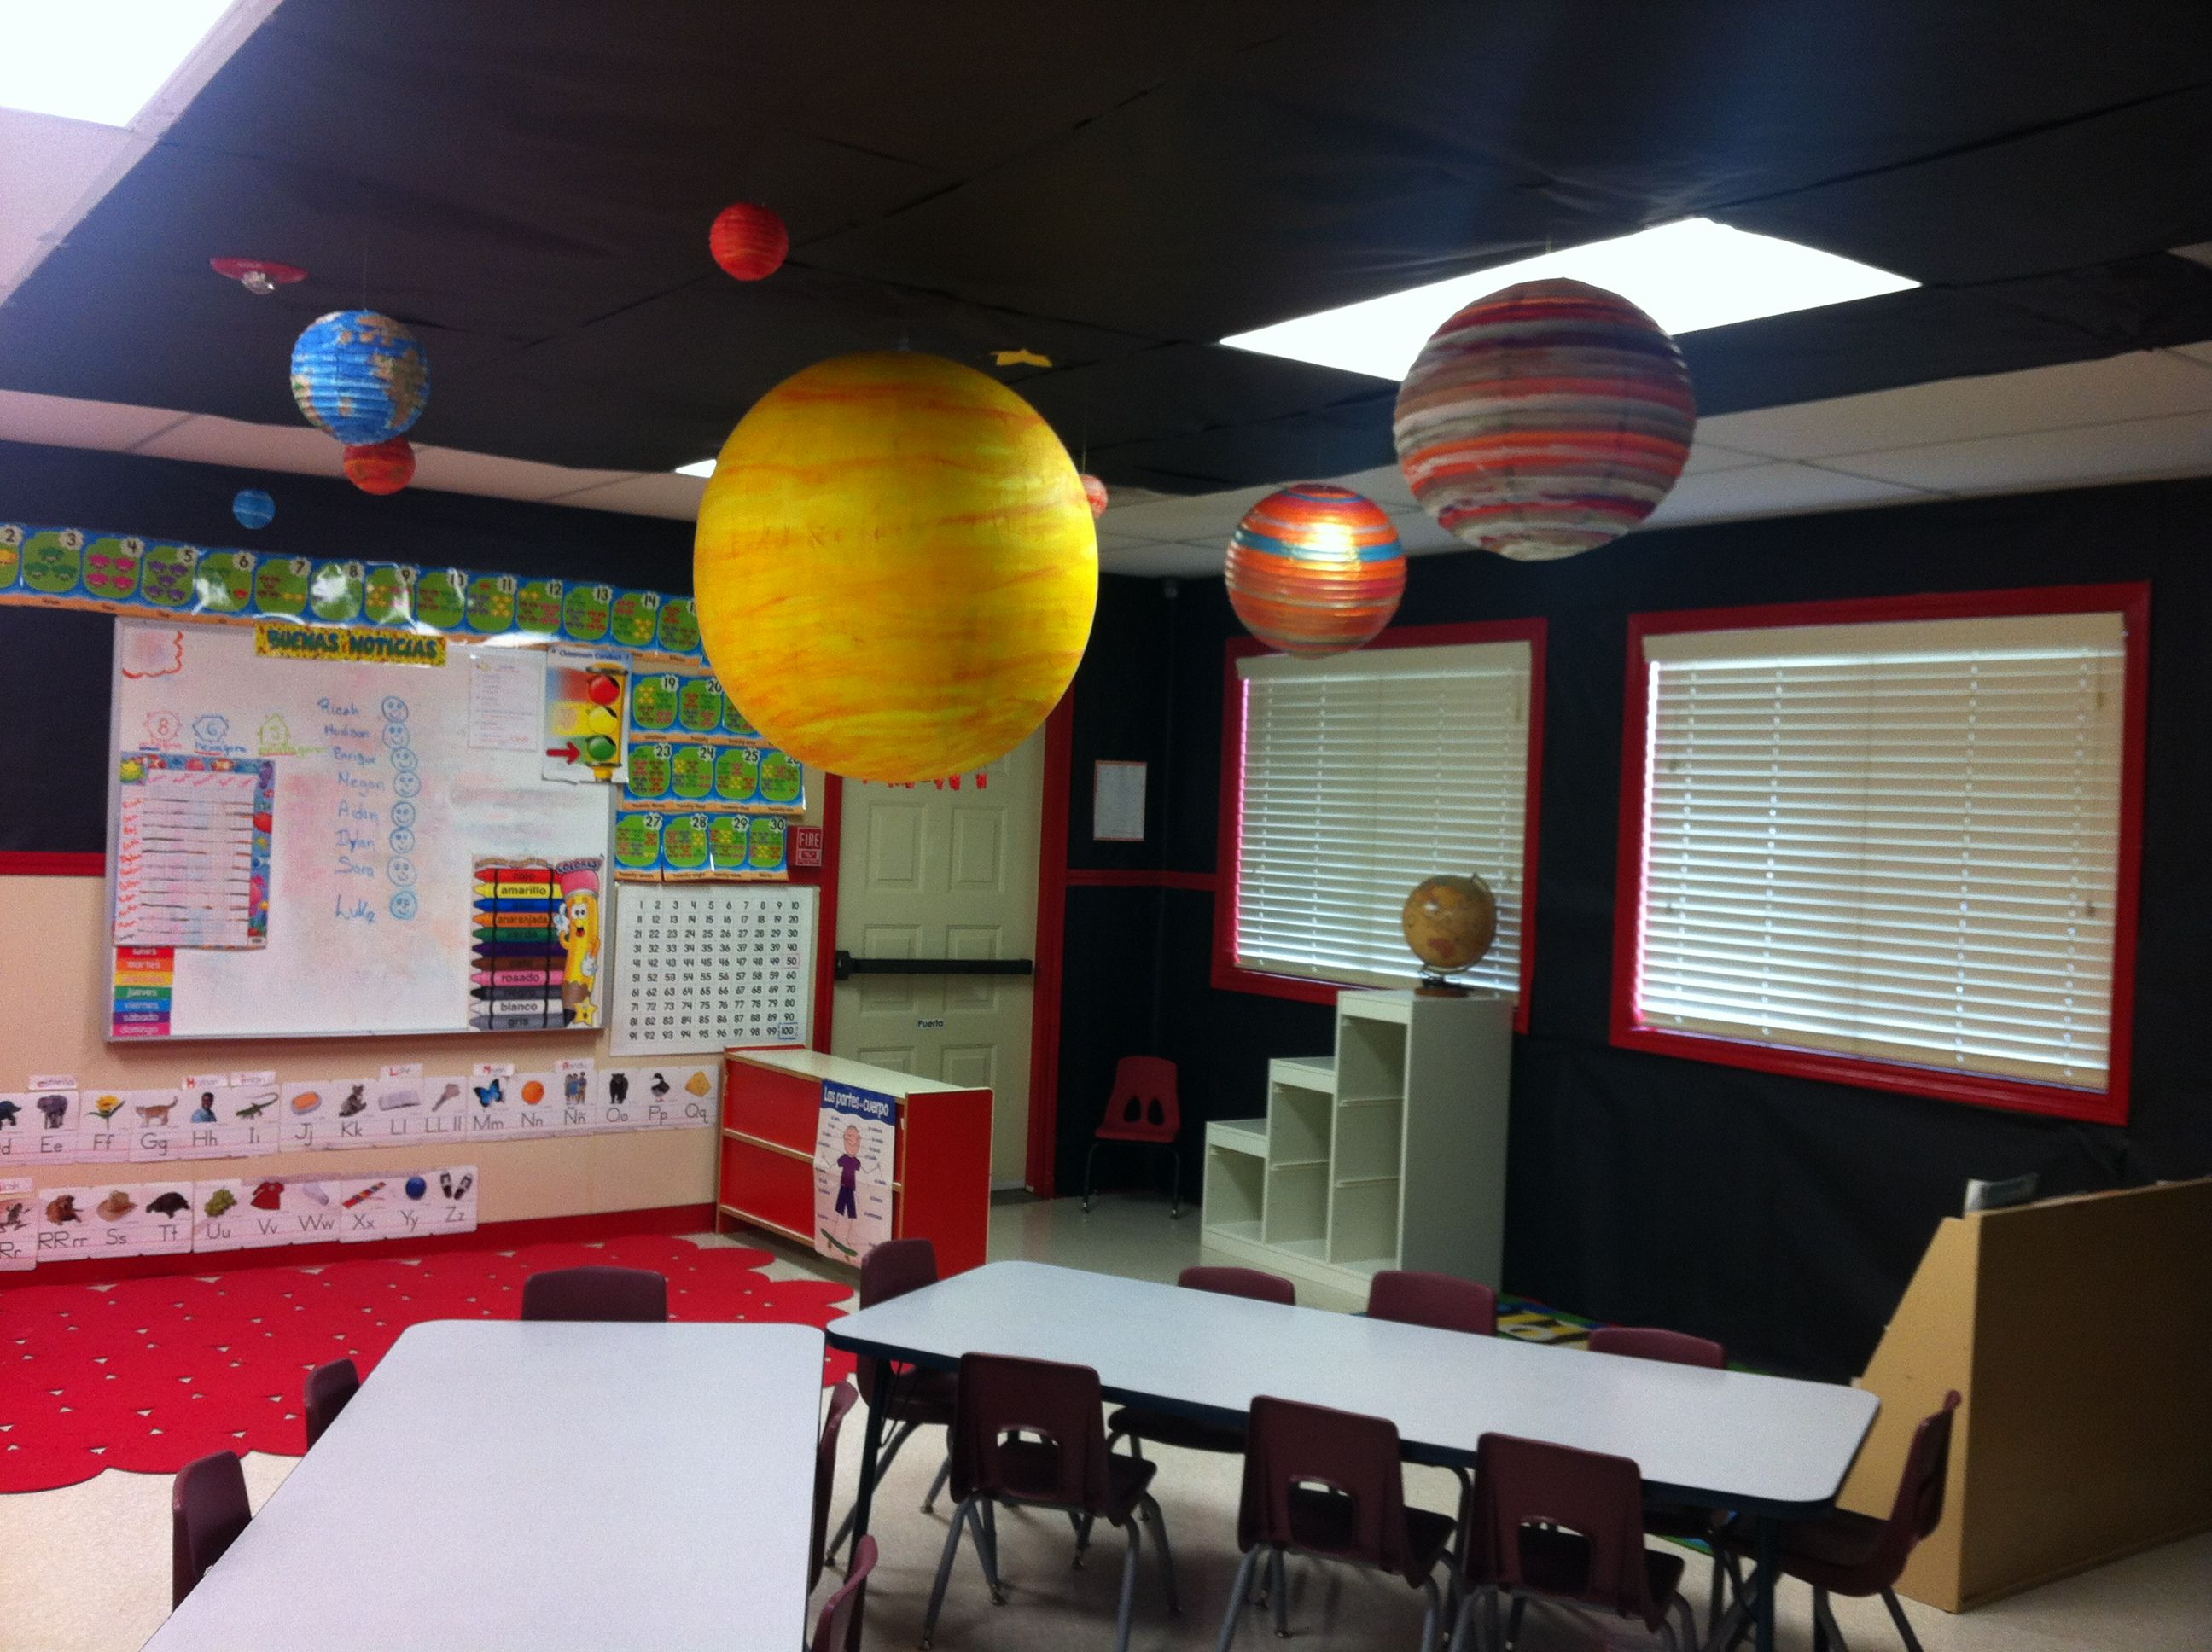 The Universe Theme For Classroom Decoration Classroom Decor Classroom Themes Classroom Decorations